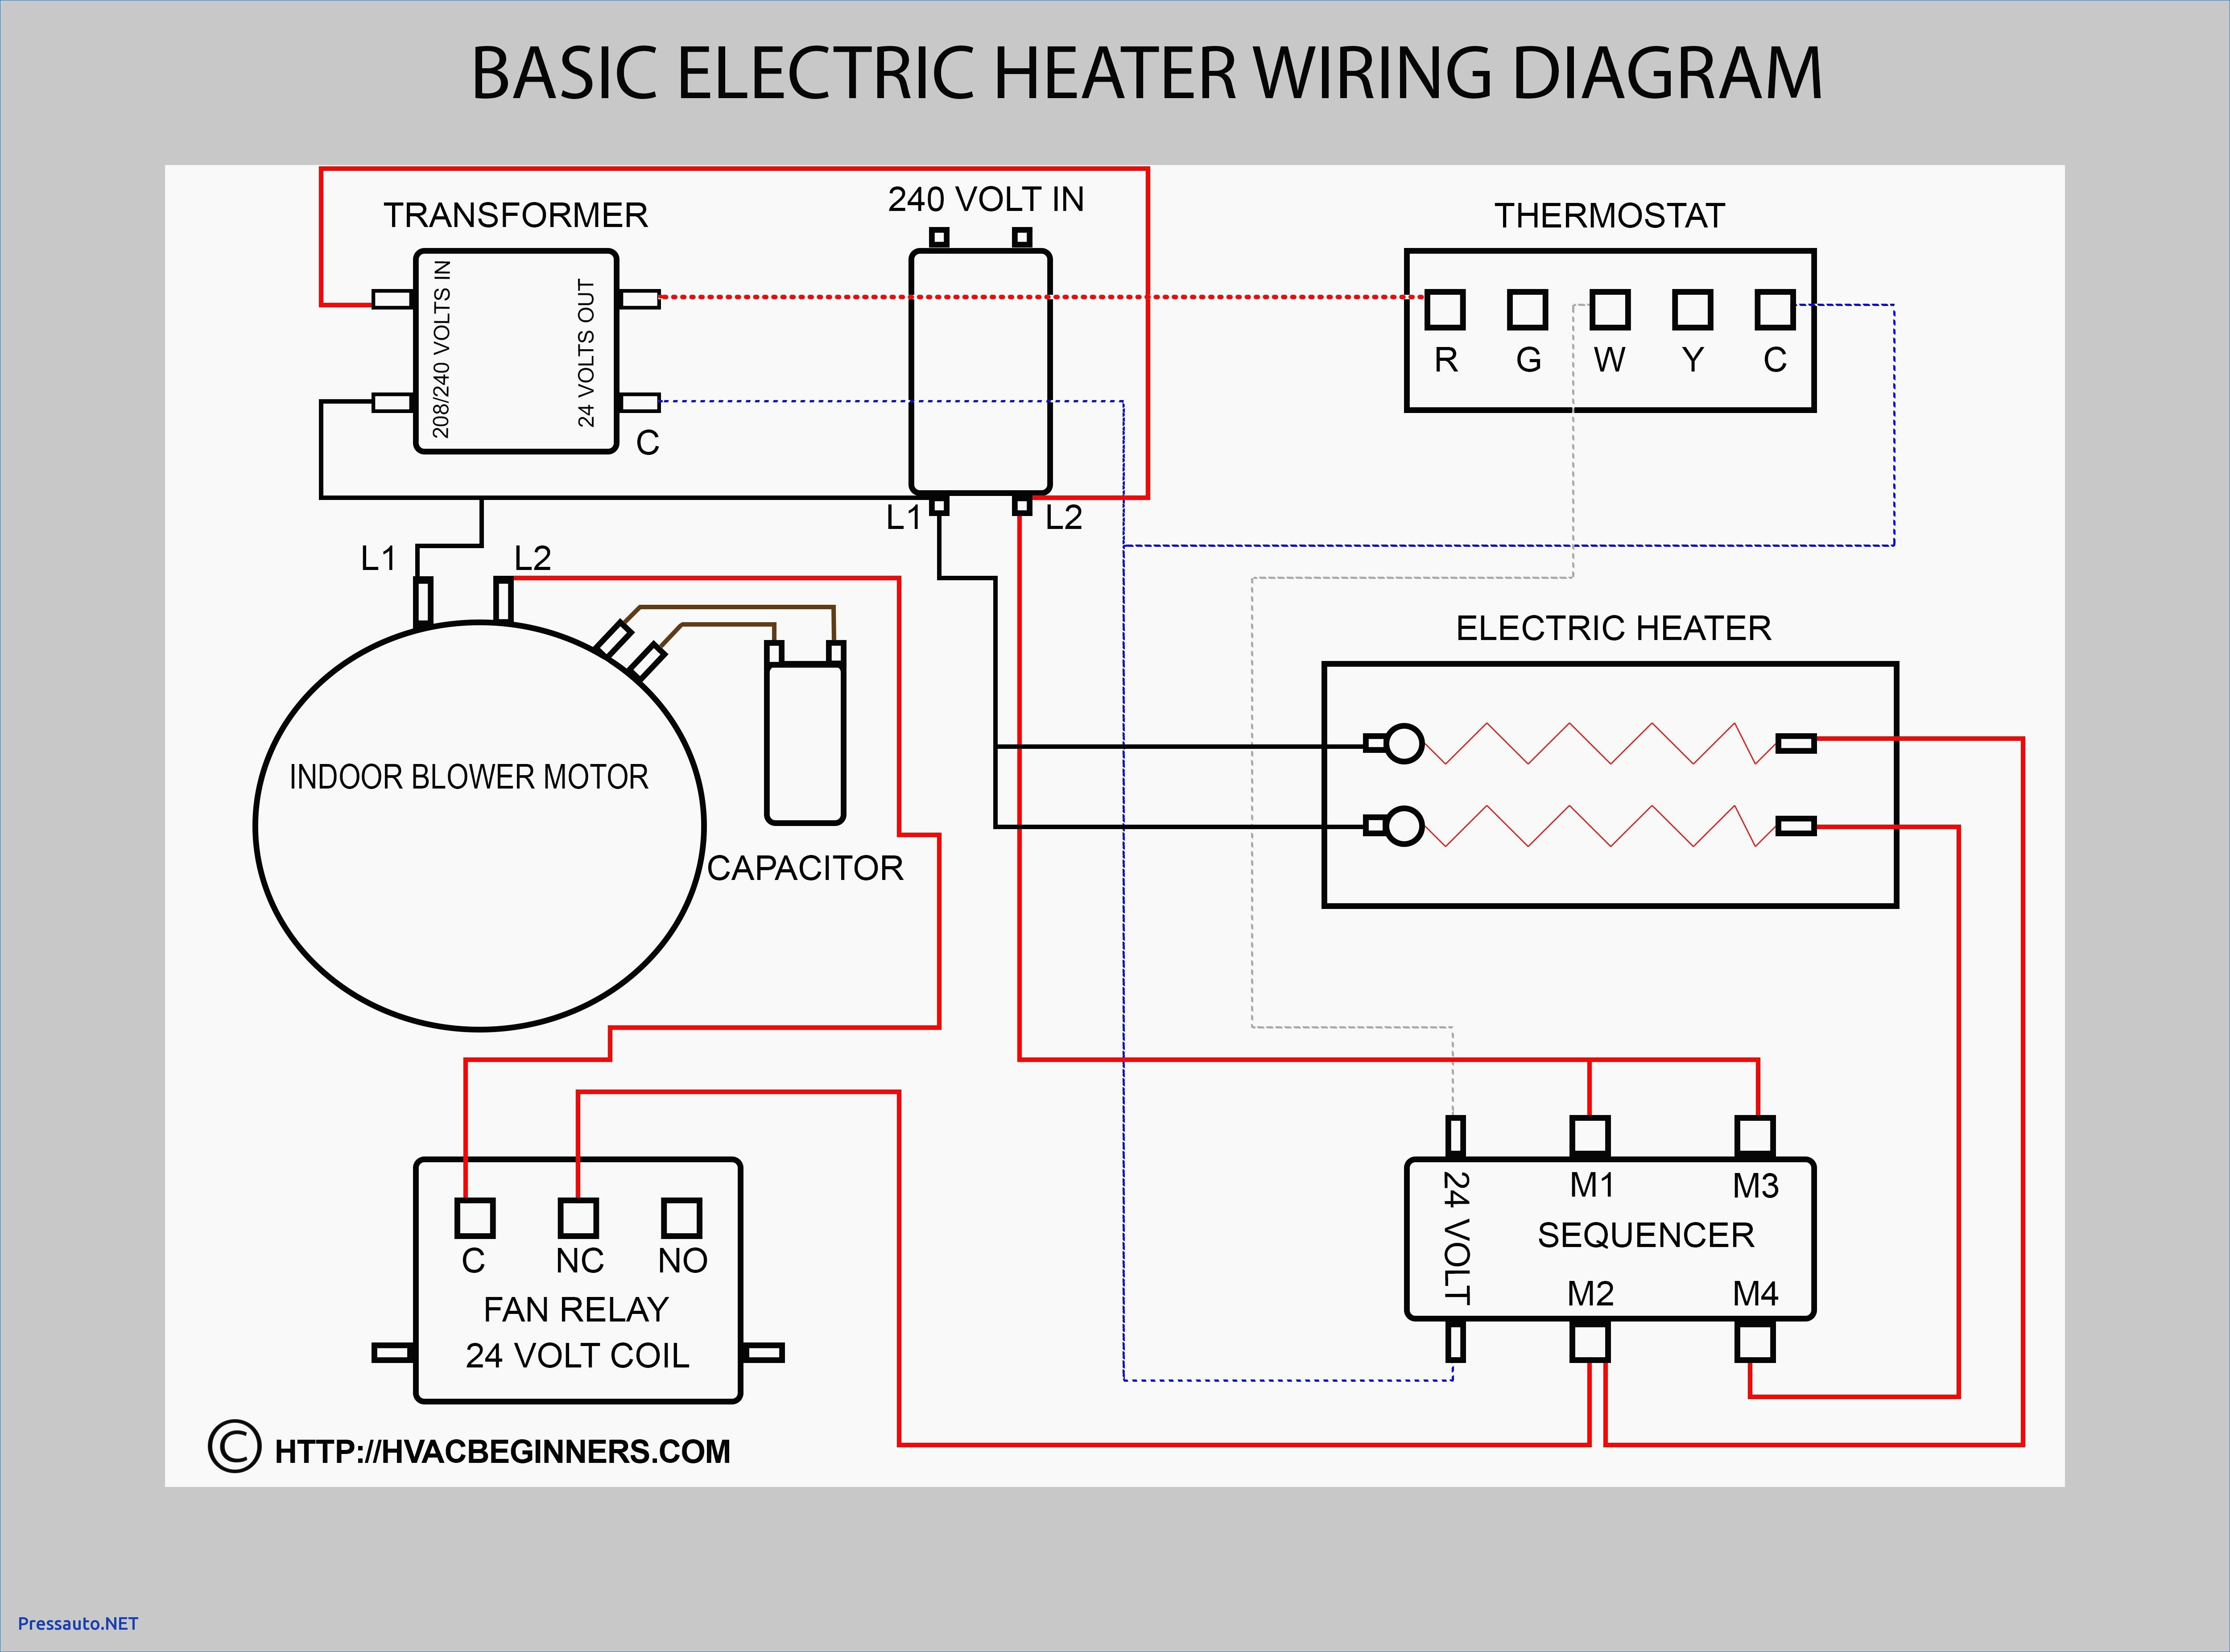 central boiler thermostat wiring diagram Collection-house thermostat wiring diagram Collection Wiring Diagrams For Central Heating Save Wiring Diagram For Heating DOWNLOAD Wiring Diagram 10-l